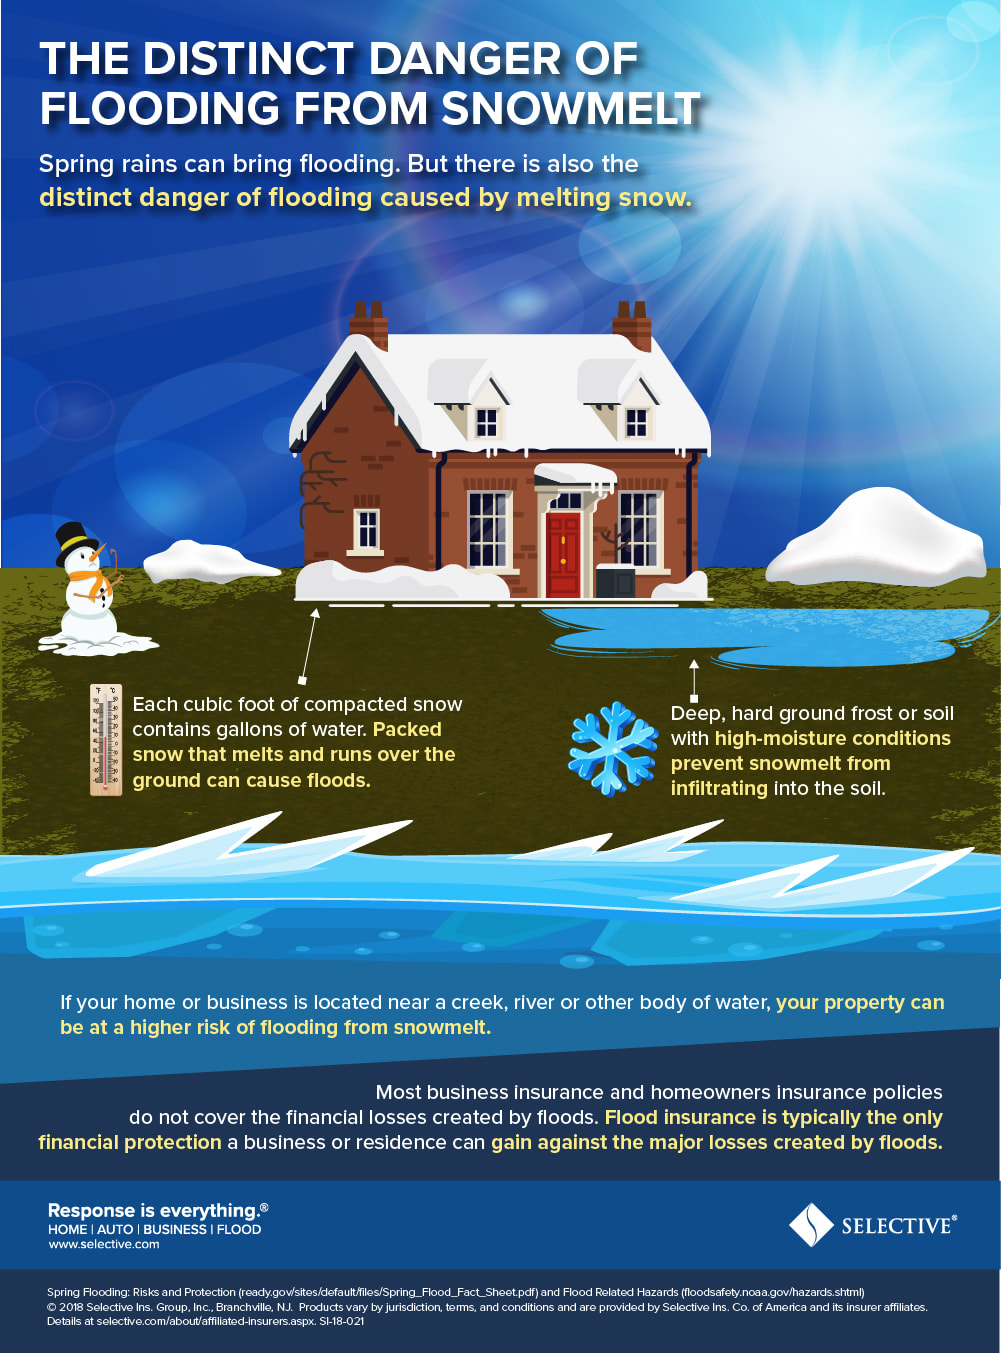 Melting snow and spring rains can cause dangerous flooding.